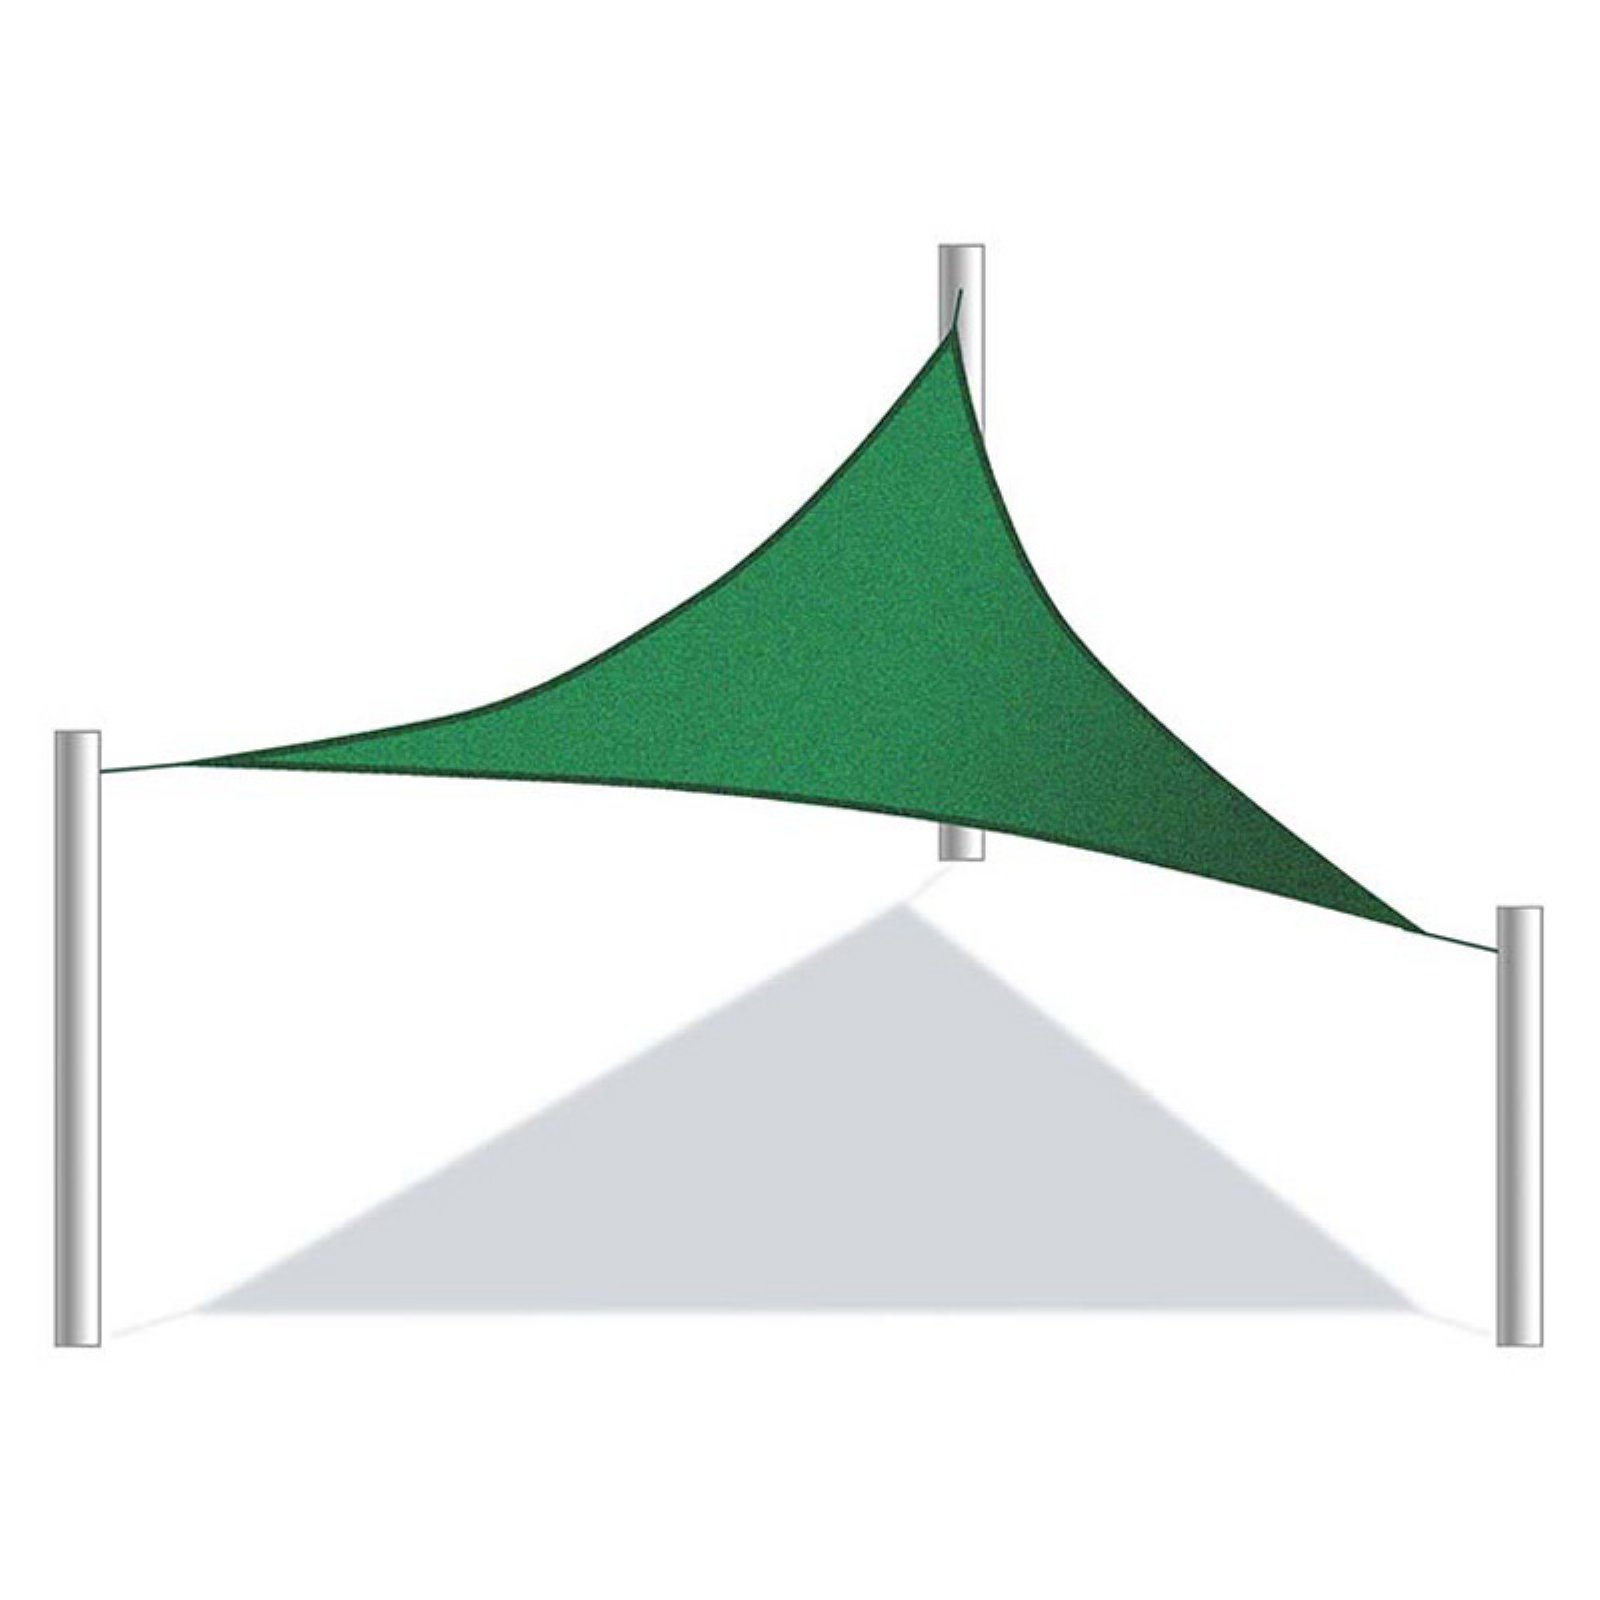 aleko 16x16x16 foot triangular sun sail shade net uv block fabric patio outdoor canopy sun shelter